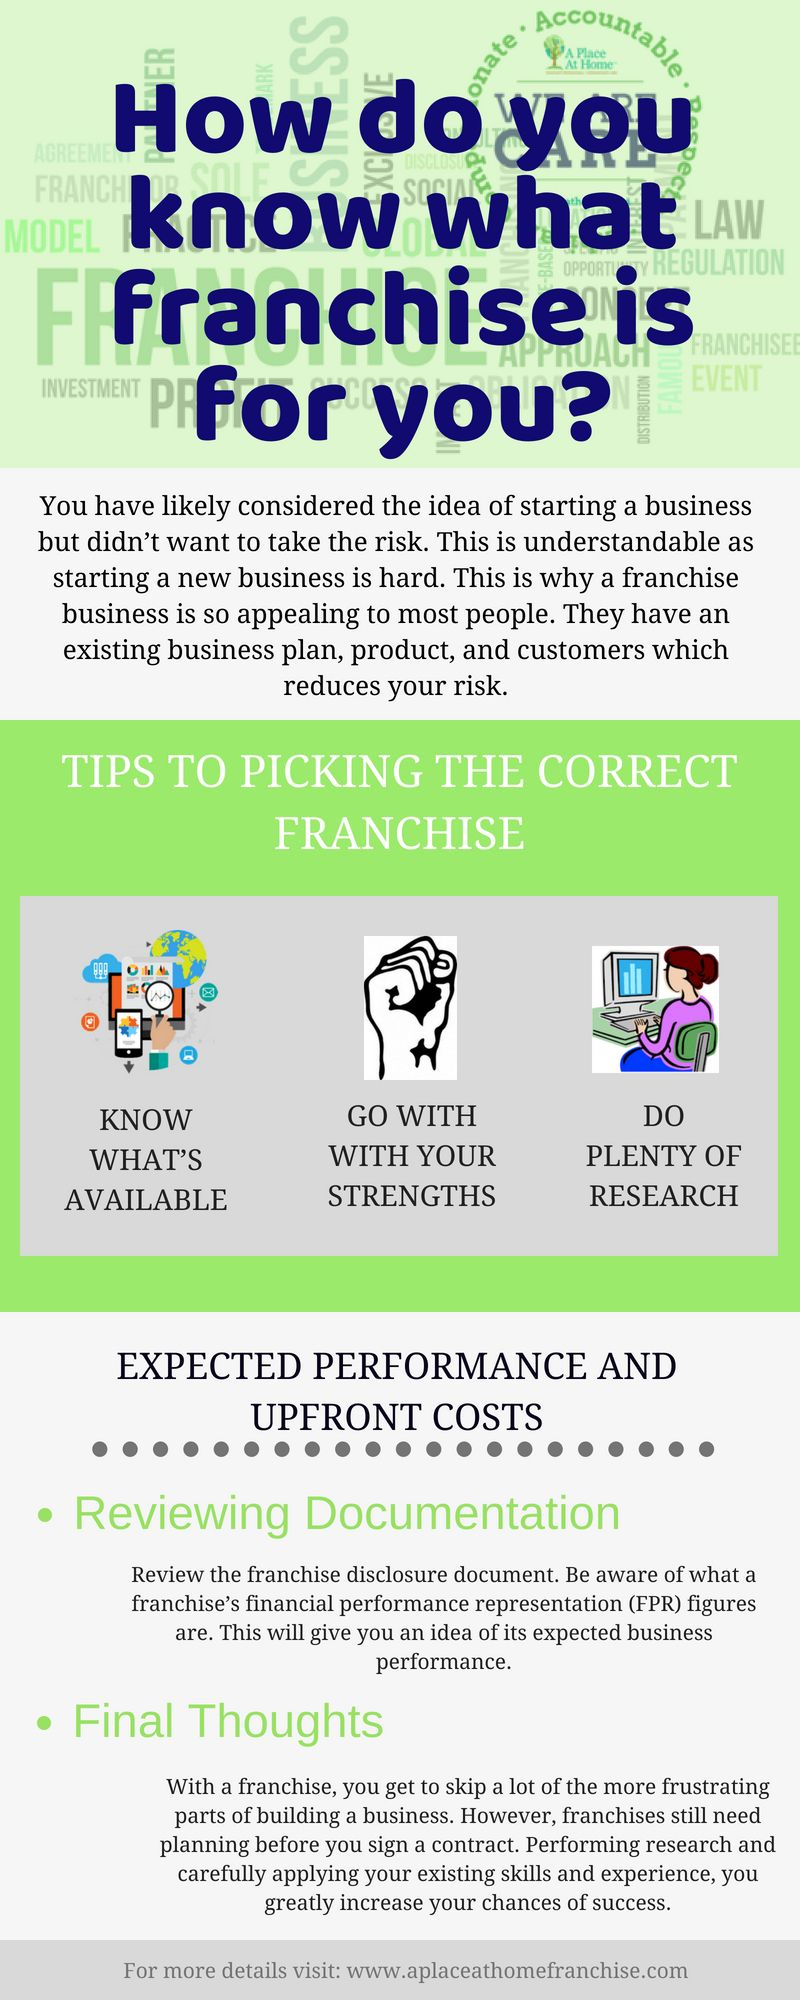 If you are thinking to start a business but do not want to